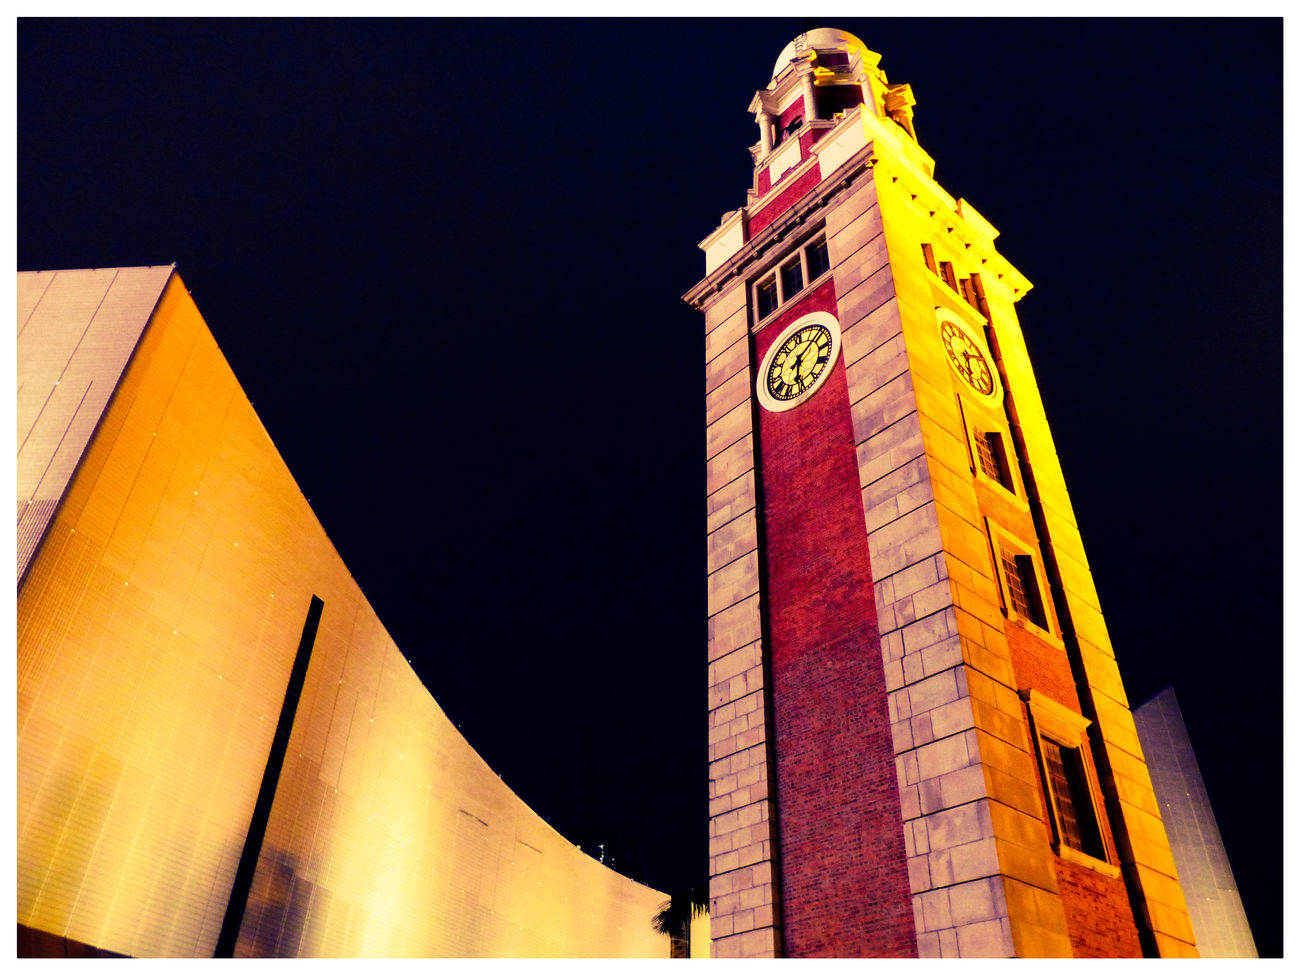 Hong Kong Hong Kong Victoria Harbour Built Structure Cityscapes Clock Tower Night View